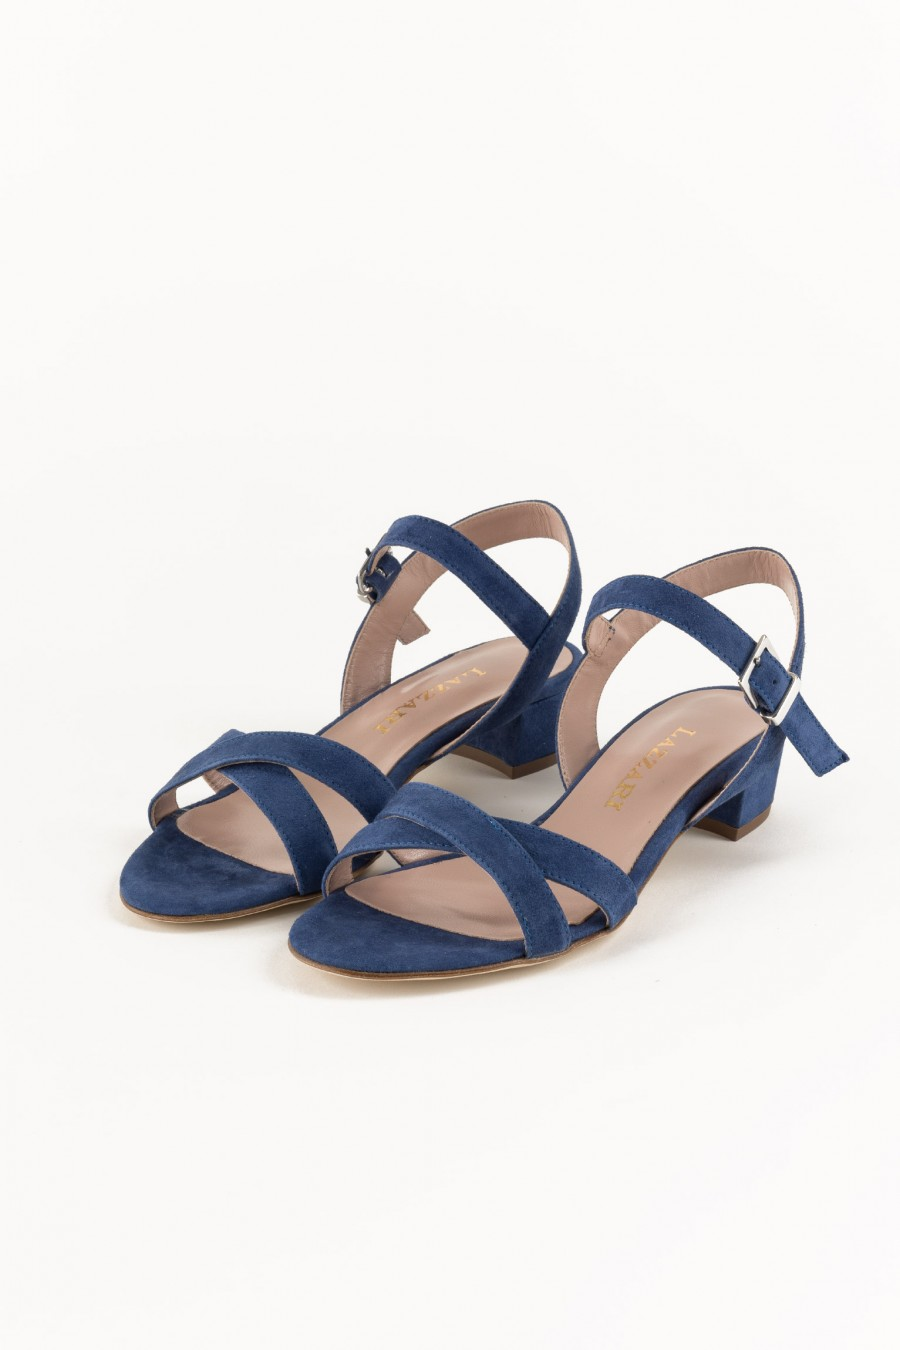 Blue sandals with lists